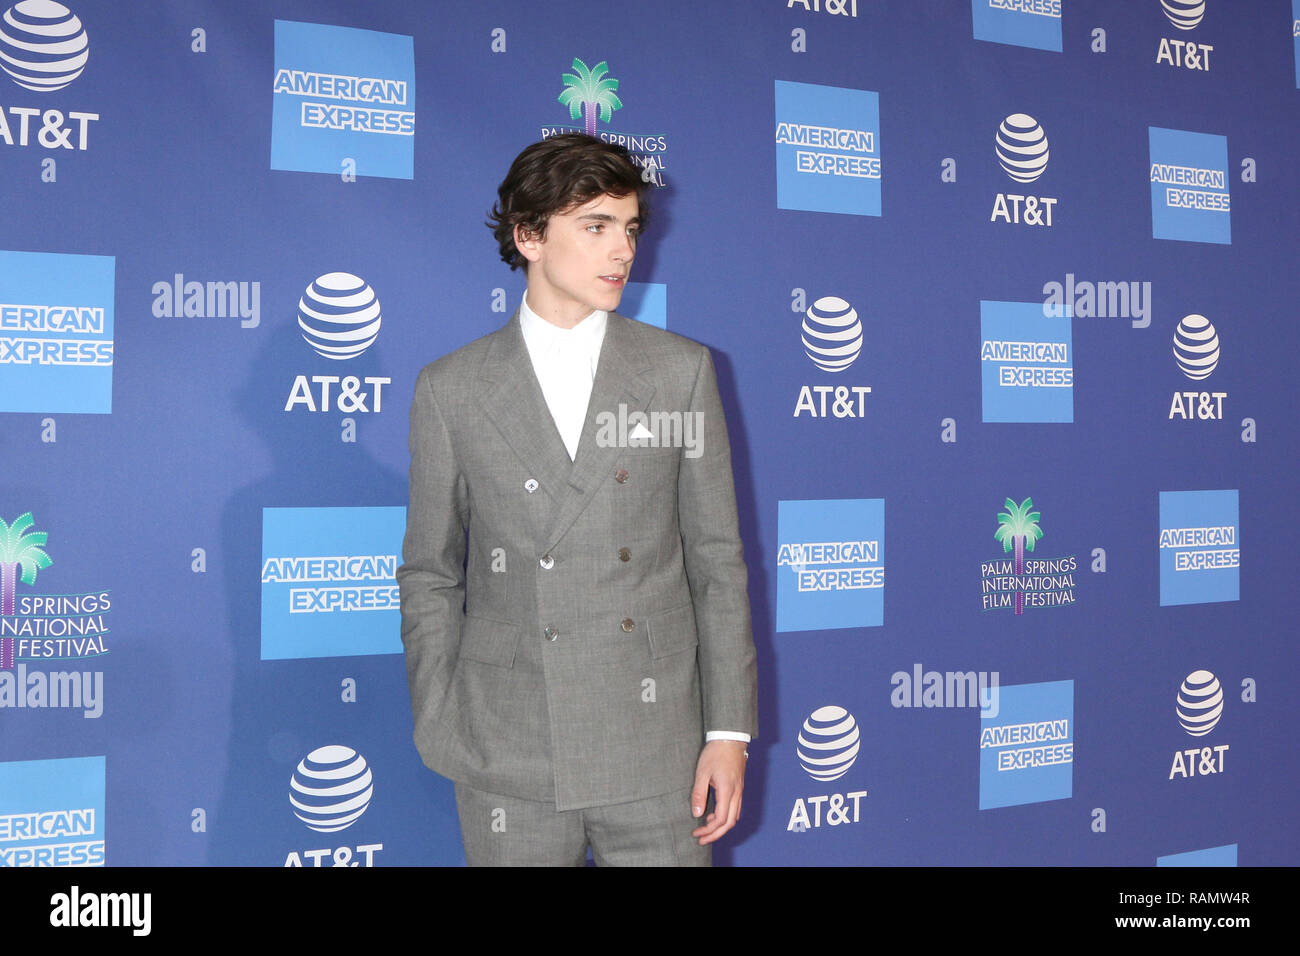 Palm Springs, CA, USA. 3rd Jan, 2019. PALM SPRINGS - JAN 17: Timothee Chalamet at the 30th Palm Springs International Film Festival Awards Gala at the Palm Springs Convention Center on January 17, 2019 in Palm Springs, CA Credit: Kay Blake/ZUMA Wire/Alamy Live News - Stock Image